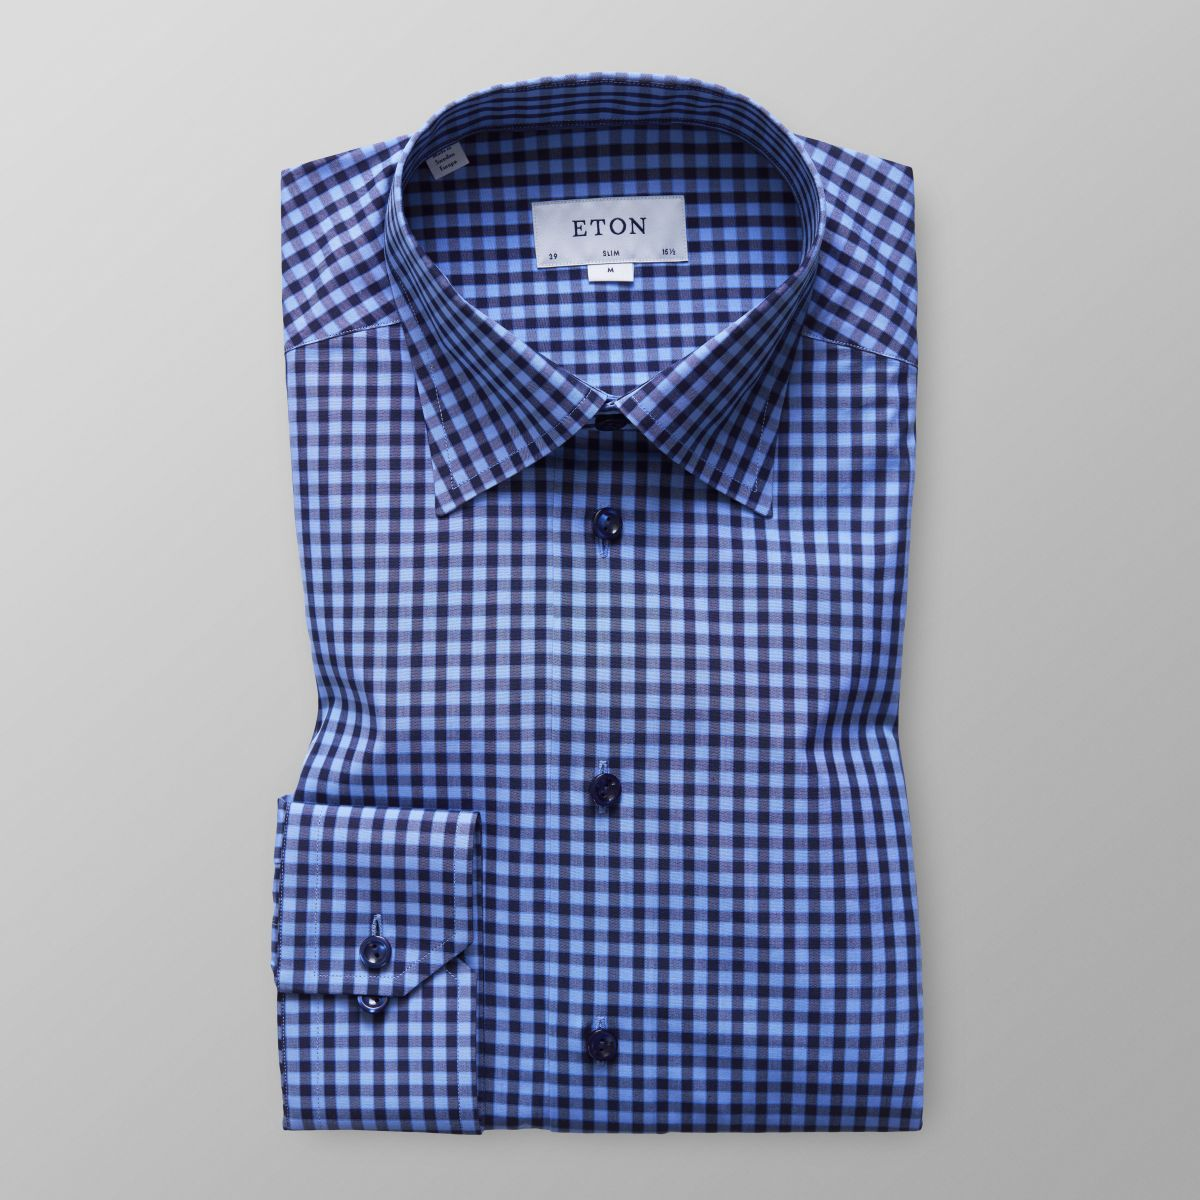 Outlet Locations Slim fit Blue Check Button-Under Shirt Eton Free Shipping Clearance Outlet Top Quality Supply Cheap Online 8BDDQ2eHD